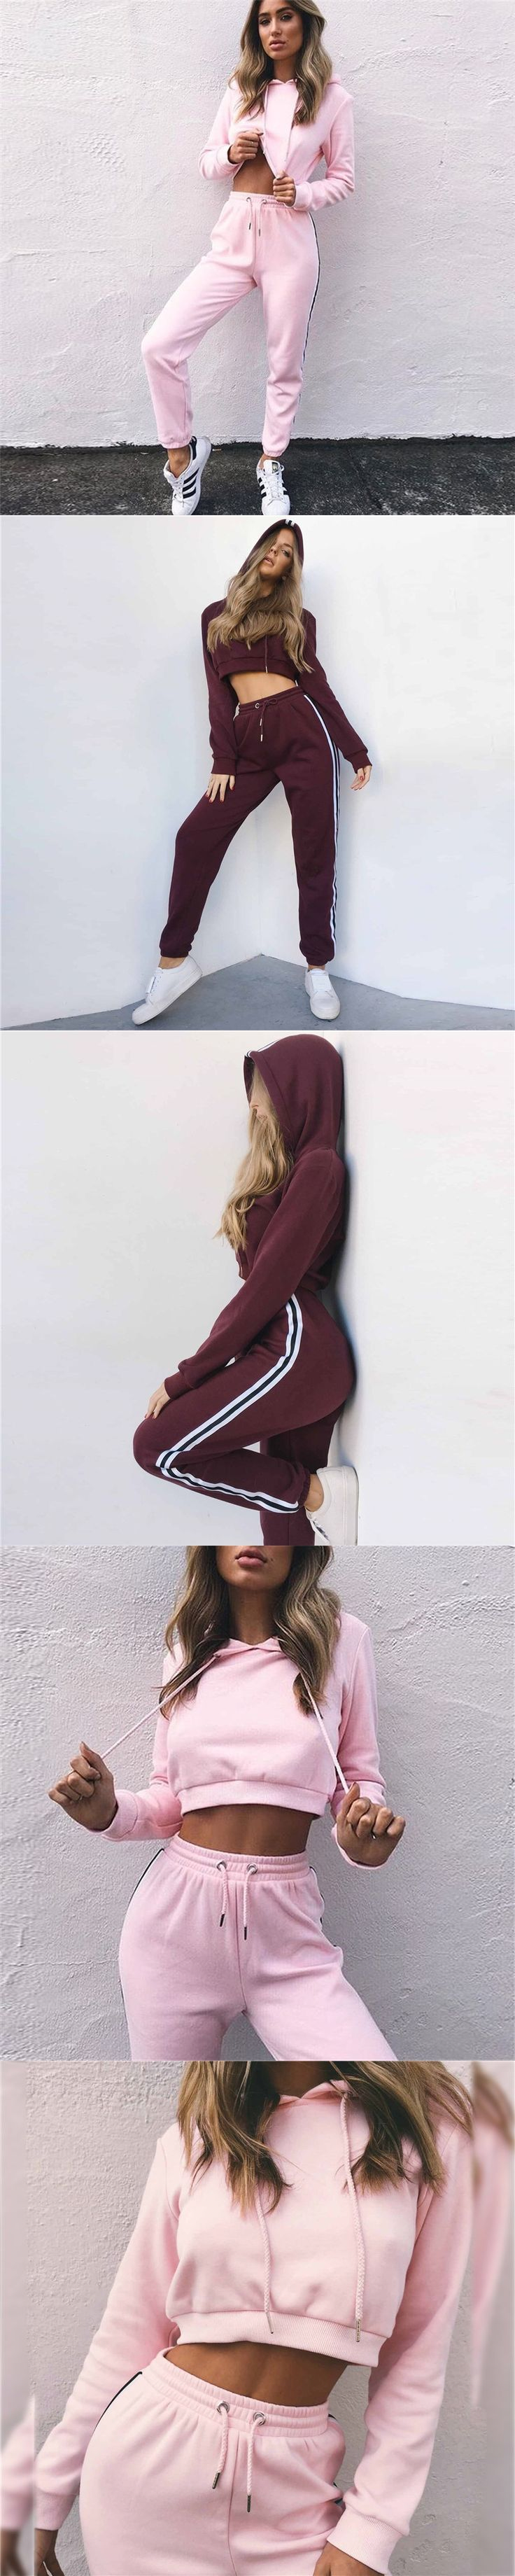 Hot Sale Women's Hoodies Casual Pants Two Piece Set Sporting Tracksuit Fitness Set Suits for Women Winter Knitted Tracksuit